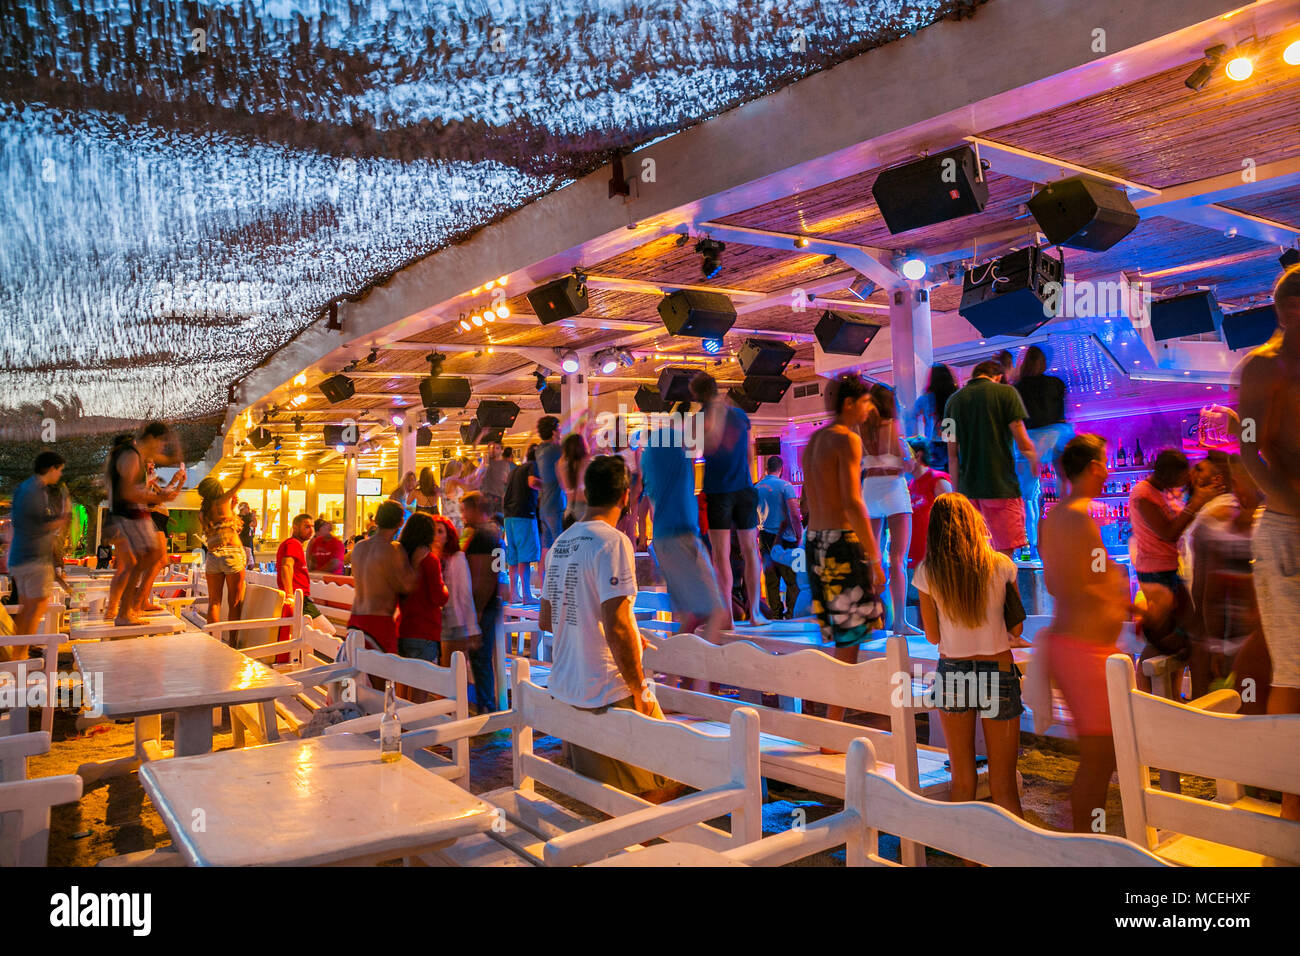 Best Island Beaches For Partying Mykonos St Barts: Mykonos Beach Party Stock Photos & Mykonos Beach Party